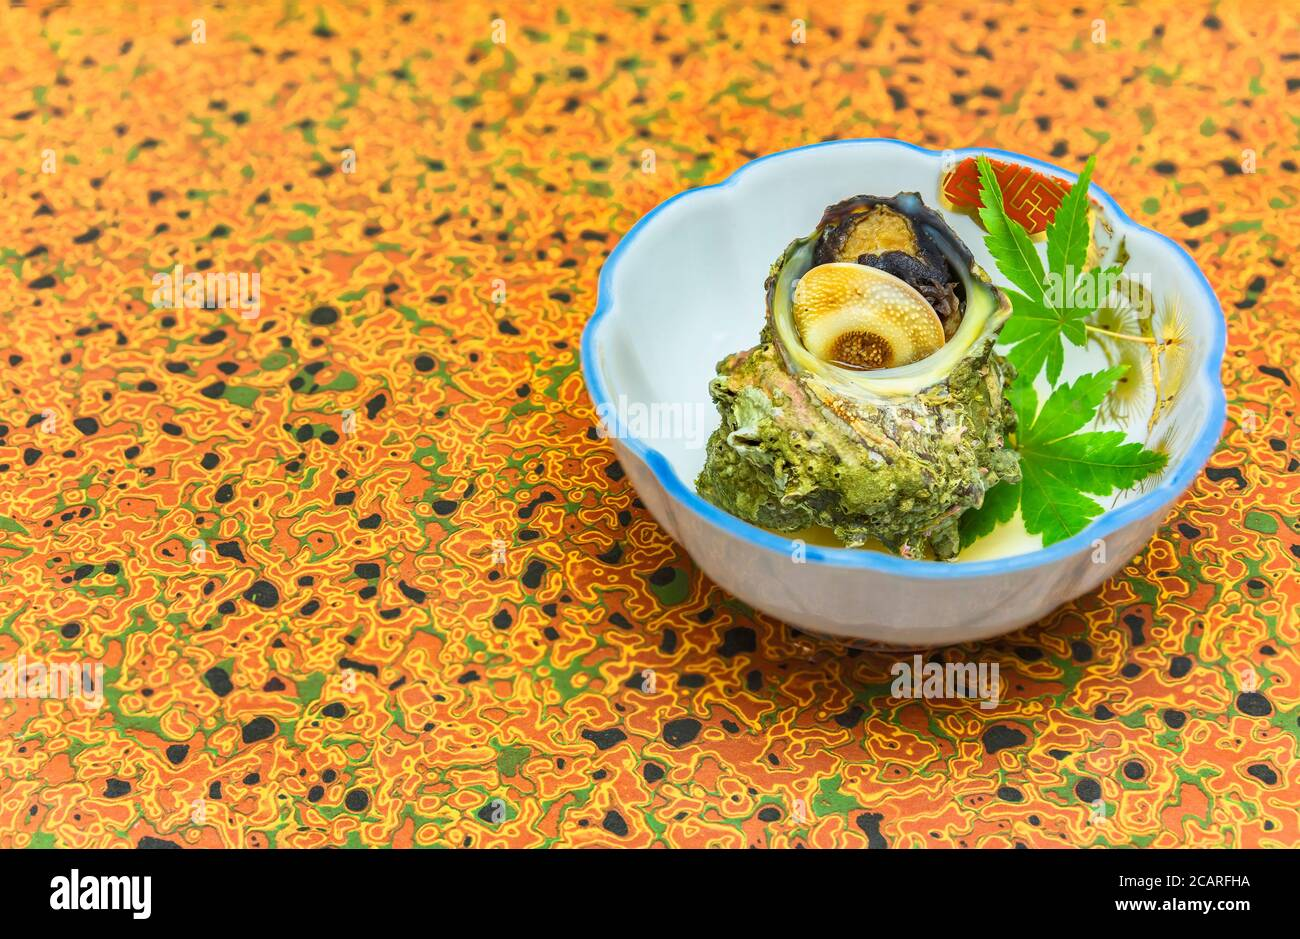 High-class japanese cuisine of traditional Tsubo-yaki steamed Sazae horned turban sea snail in a dish plate decorated with maple momiji leaves. Stock Photo